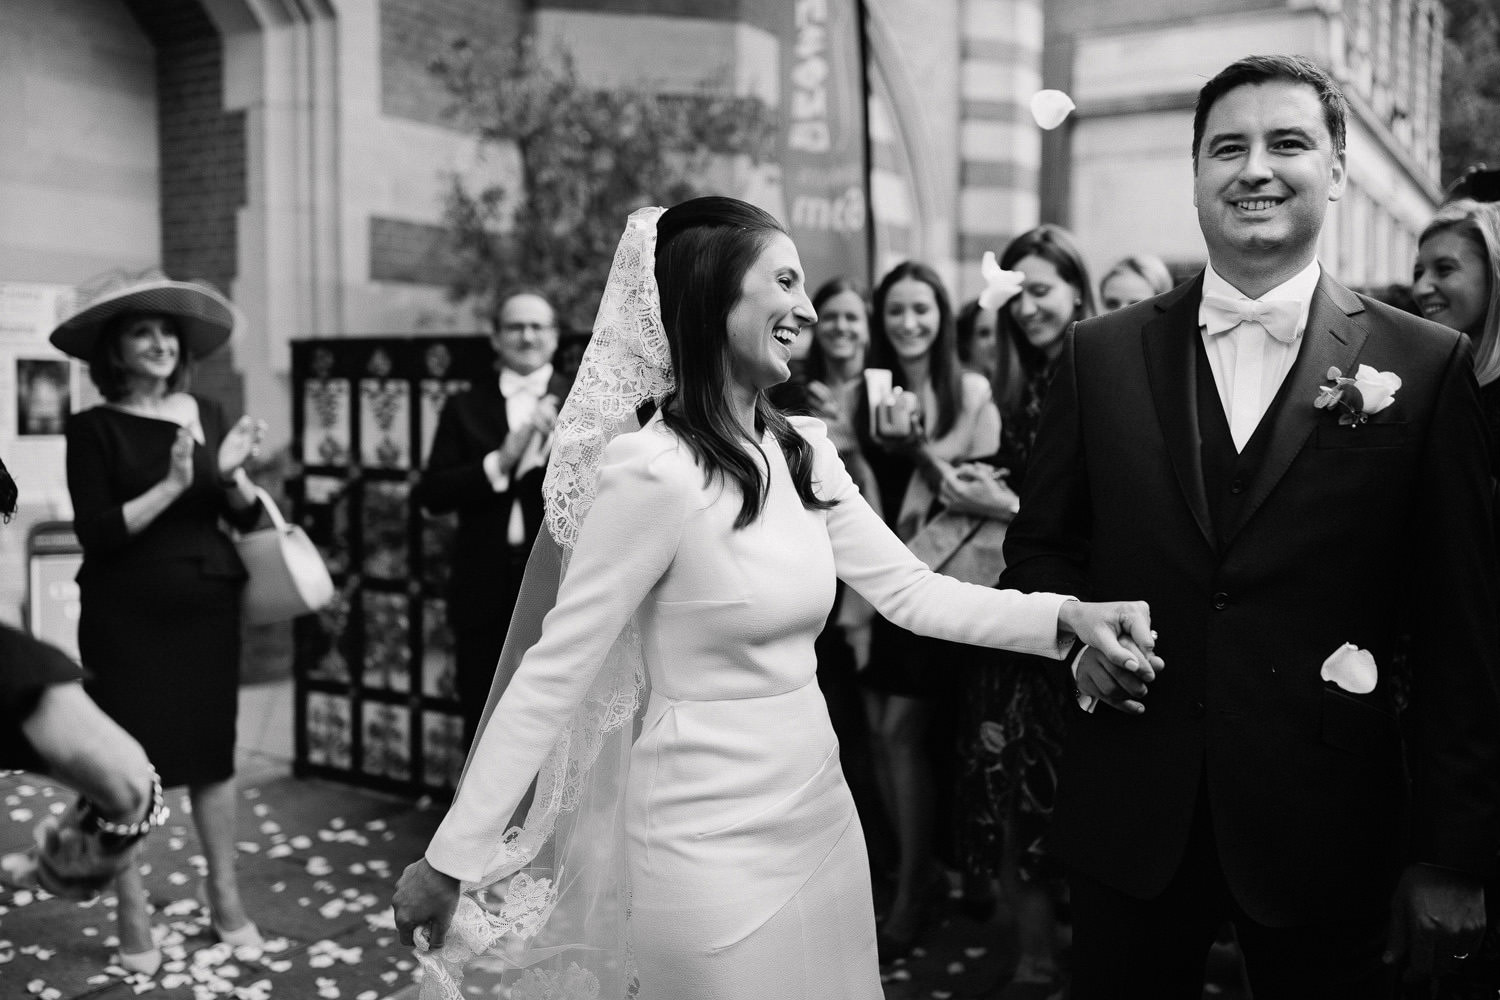 bride and groom smiling on the London street surrounded by friends